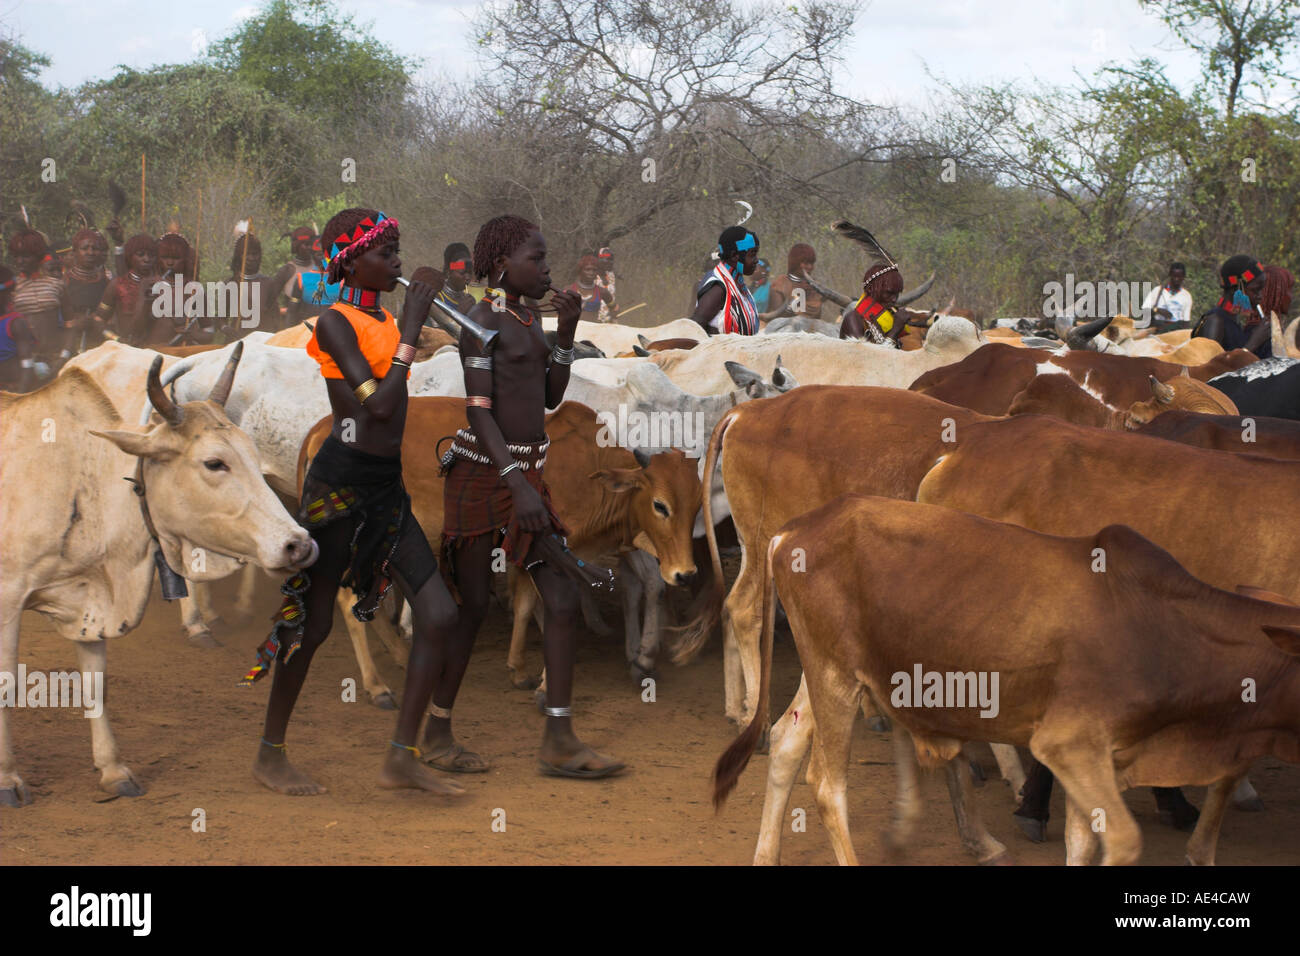 Ritual dancing, Jumping of the Bulls initiation ceremony of the Hamer (Hamar) people, Turmi, Lower Omo Valley, Ethiopia, Stock Photo